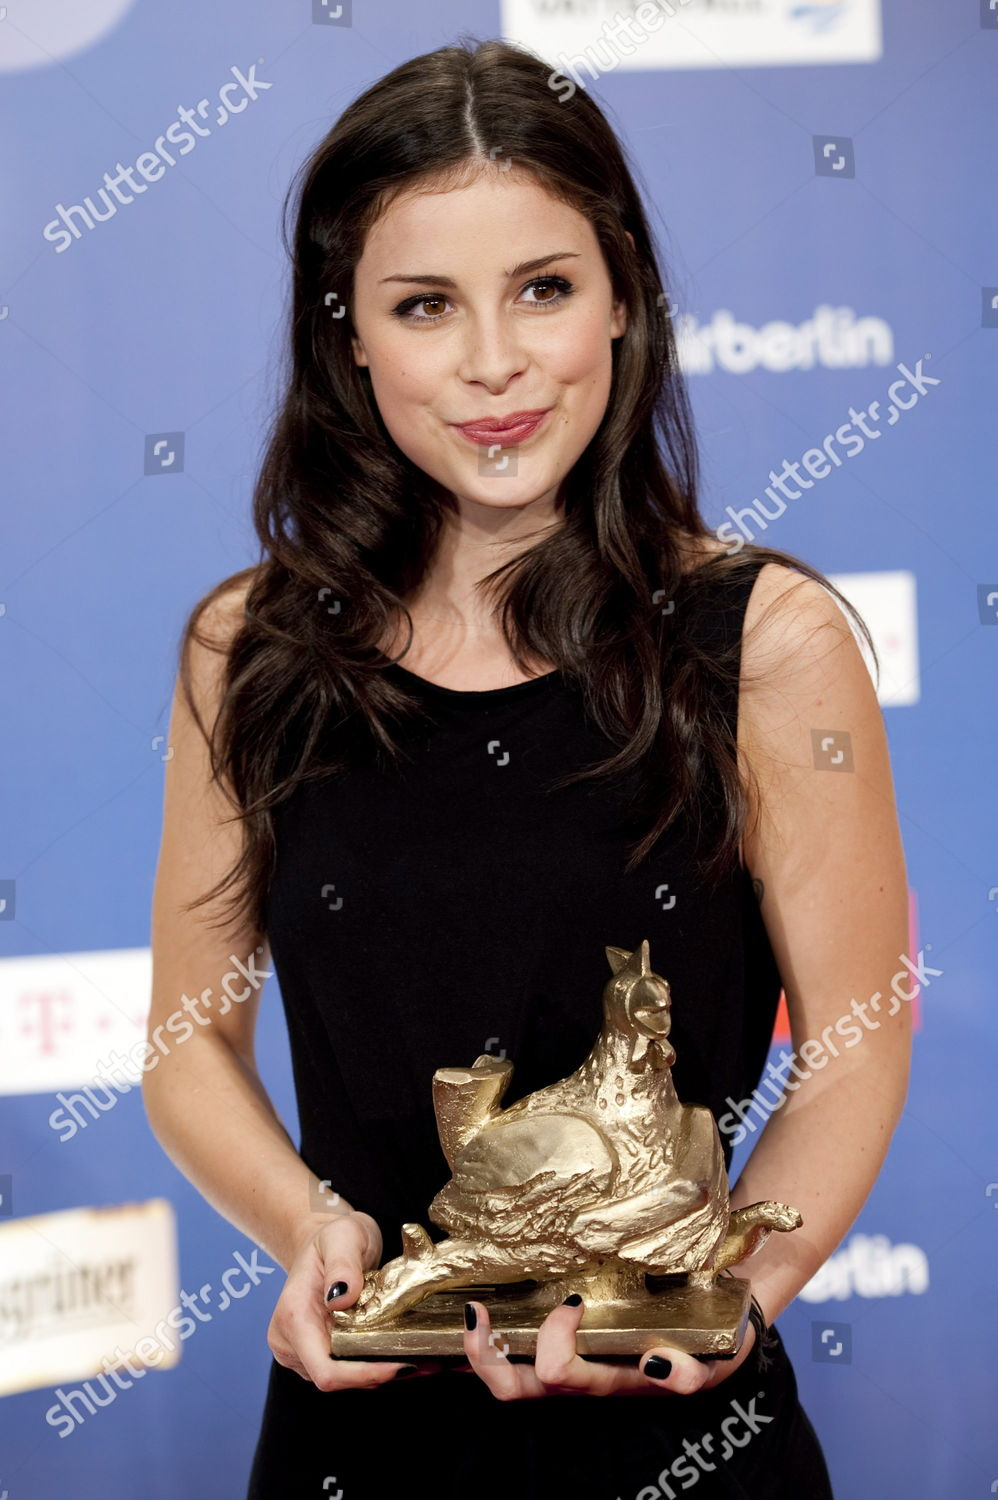 German Singer Lena Meyerlandrut Winner Eurovision Song Editorial Stock Photo Stock Image Shutterstock